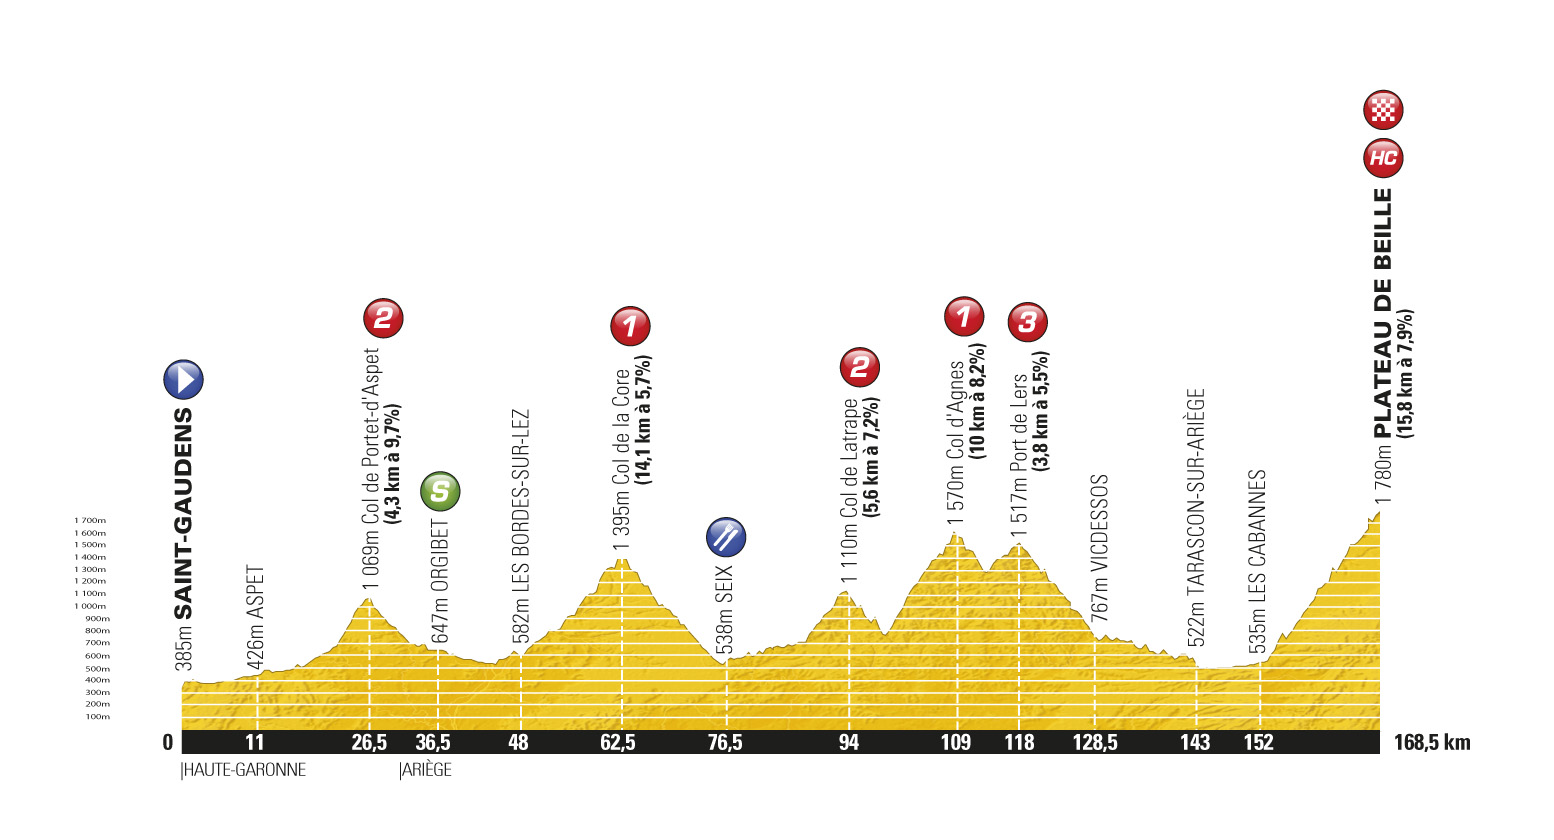 Stage 14 profile, Tour de France 2011